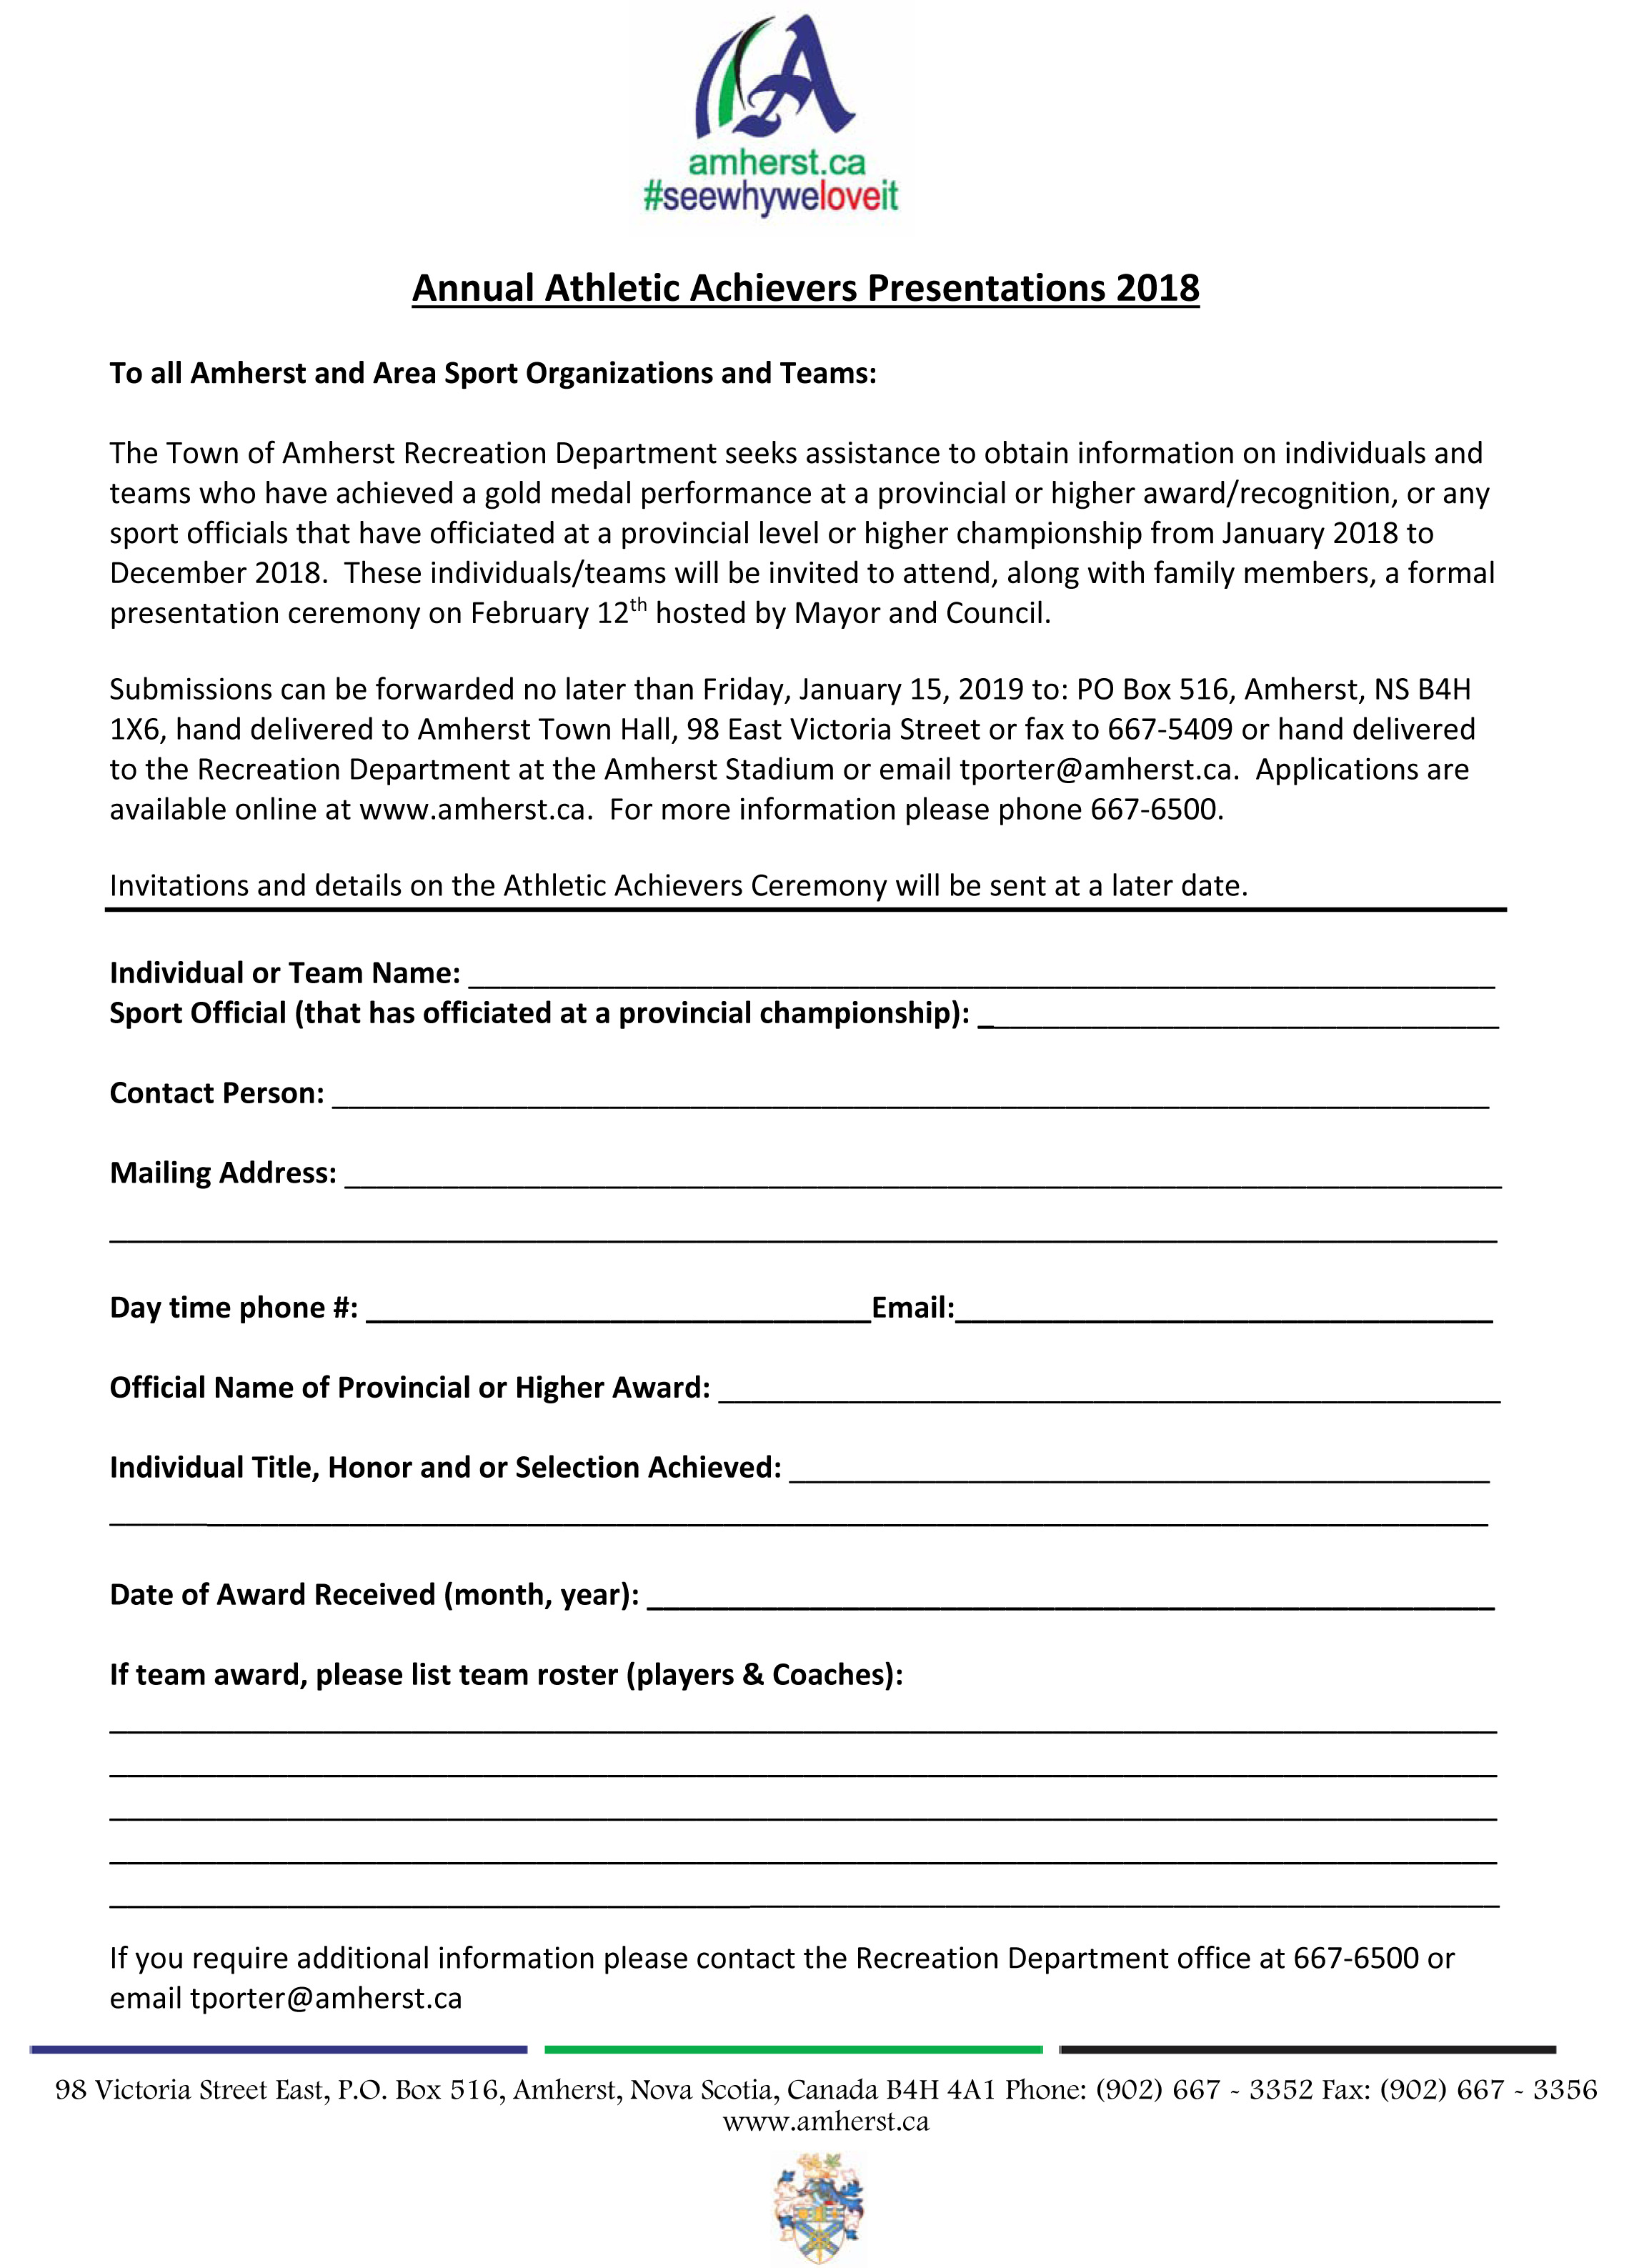 Athletic Achievers nomination form 2018